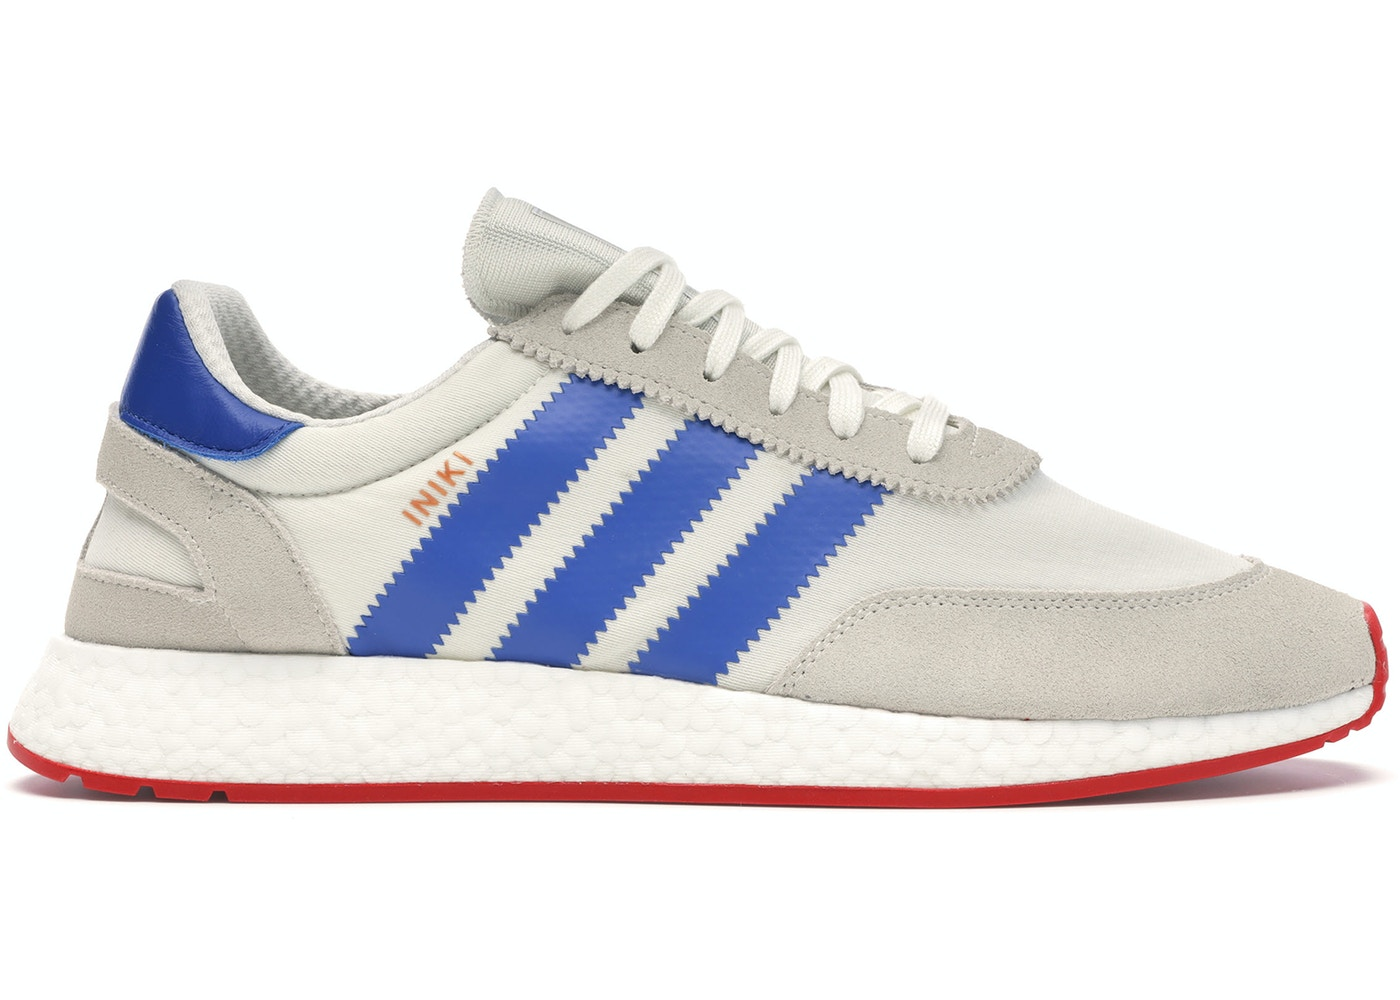 quality design 1f3f5 0d595 Buy adidas Iniki Shoes & Deadstock Sneakers